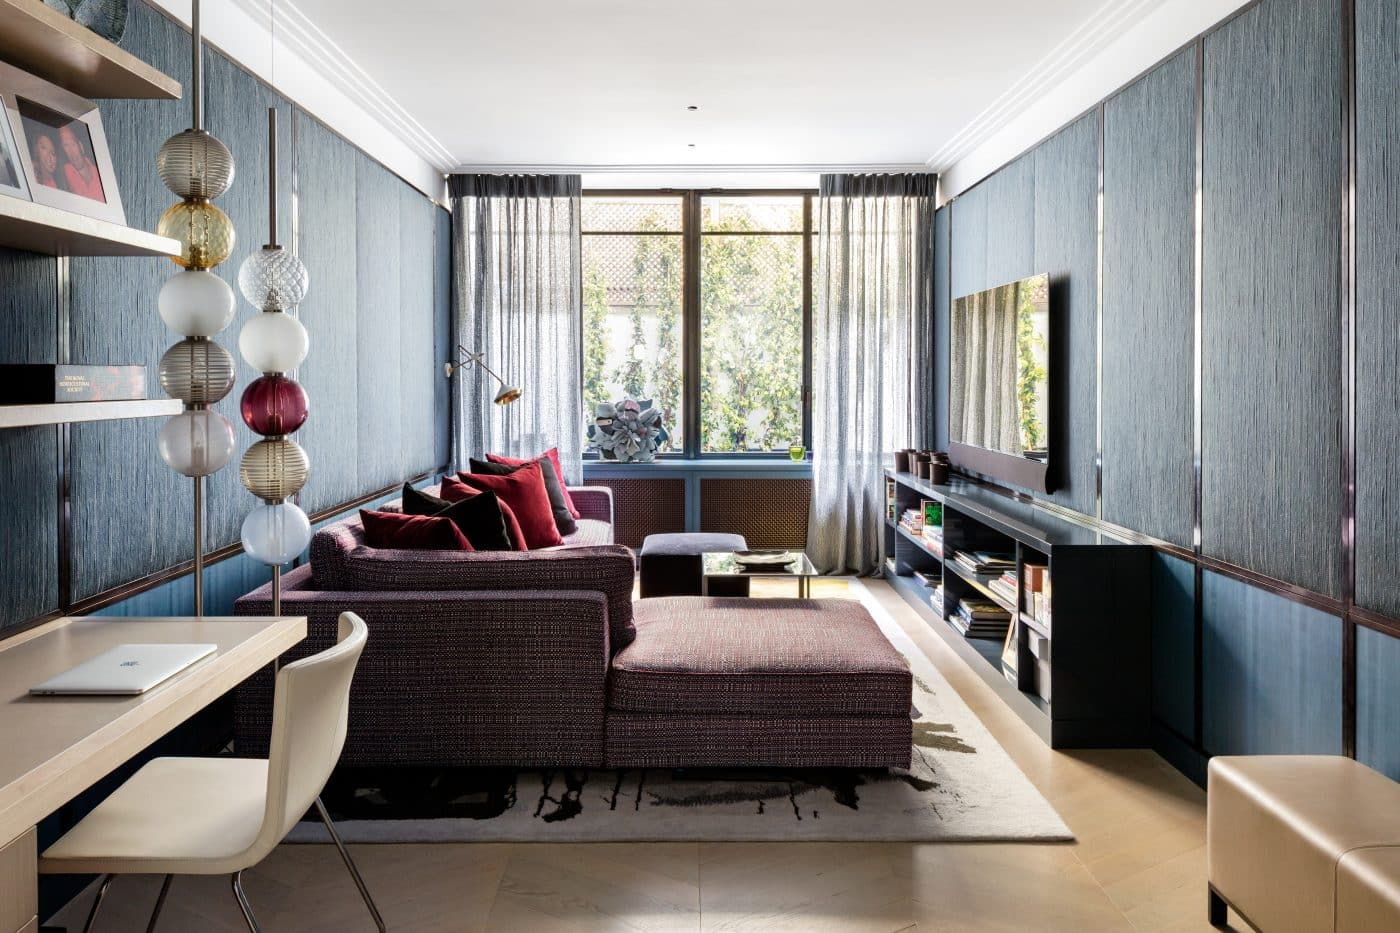 Another study in the London home designed by Carden Cunietti